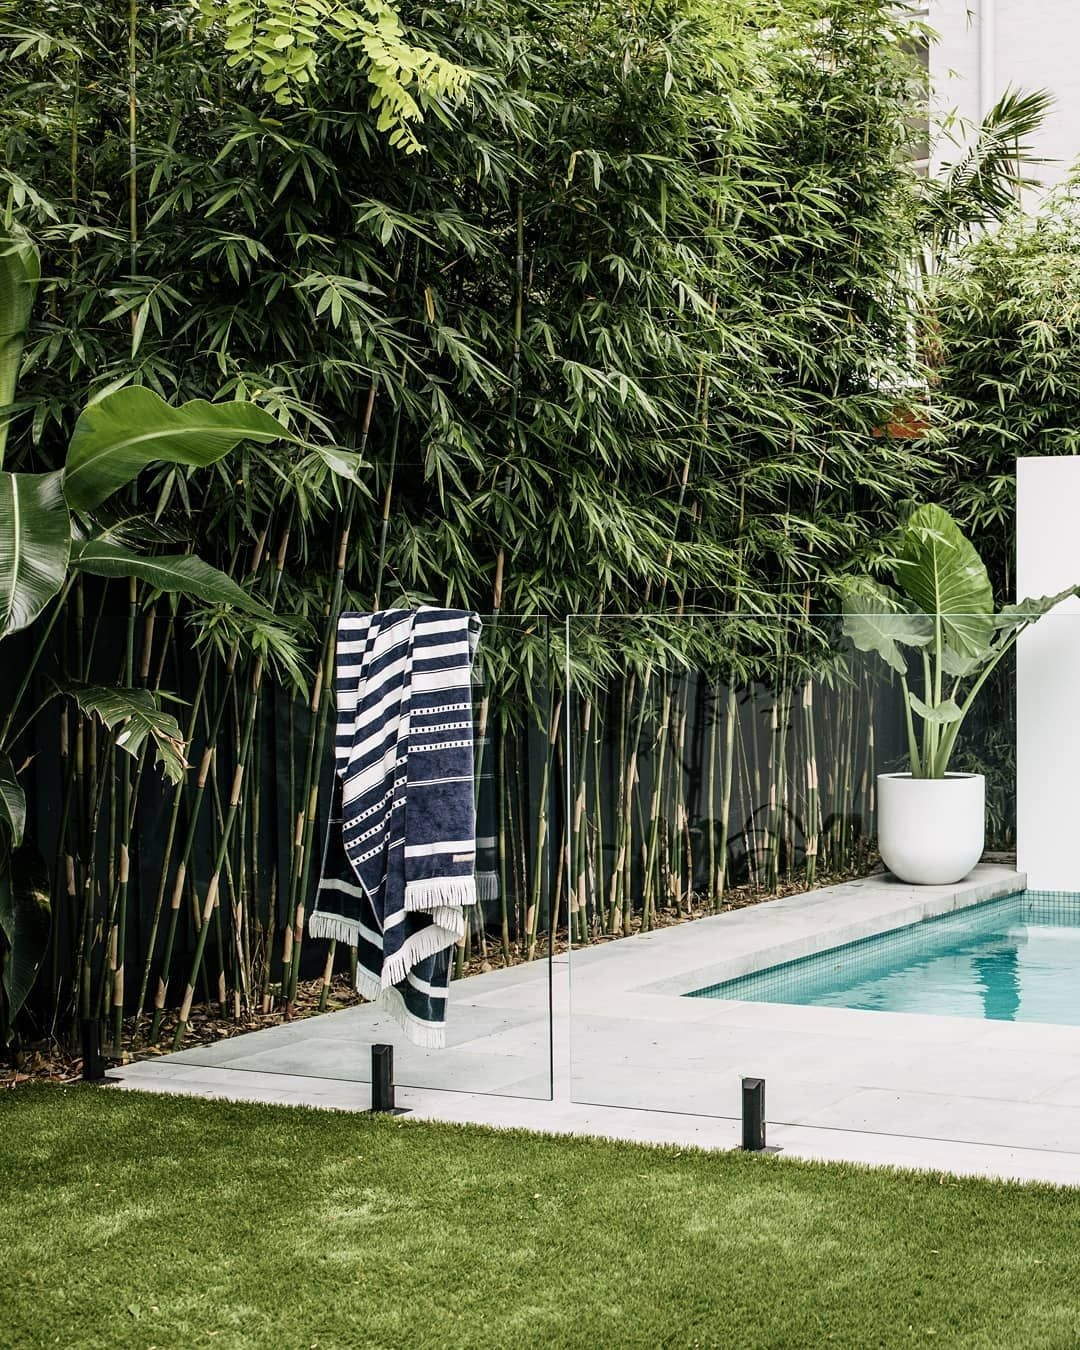 Surprising Tropical Pool Landscaping Design Ideas To Try Soon 03